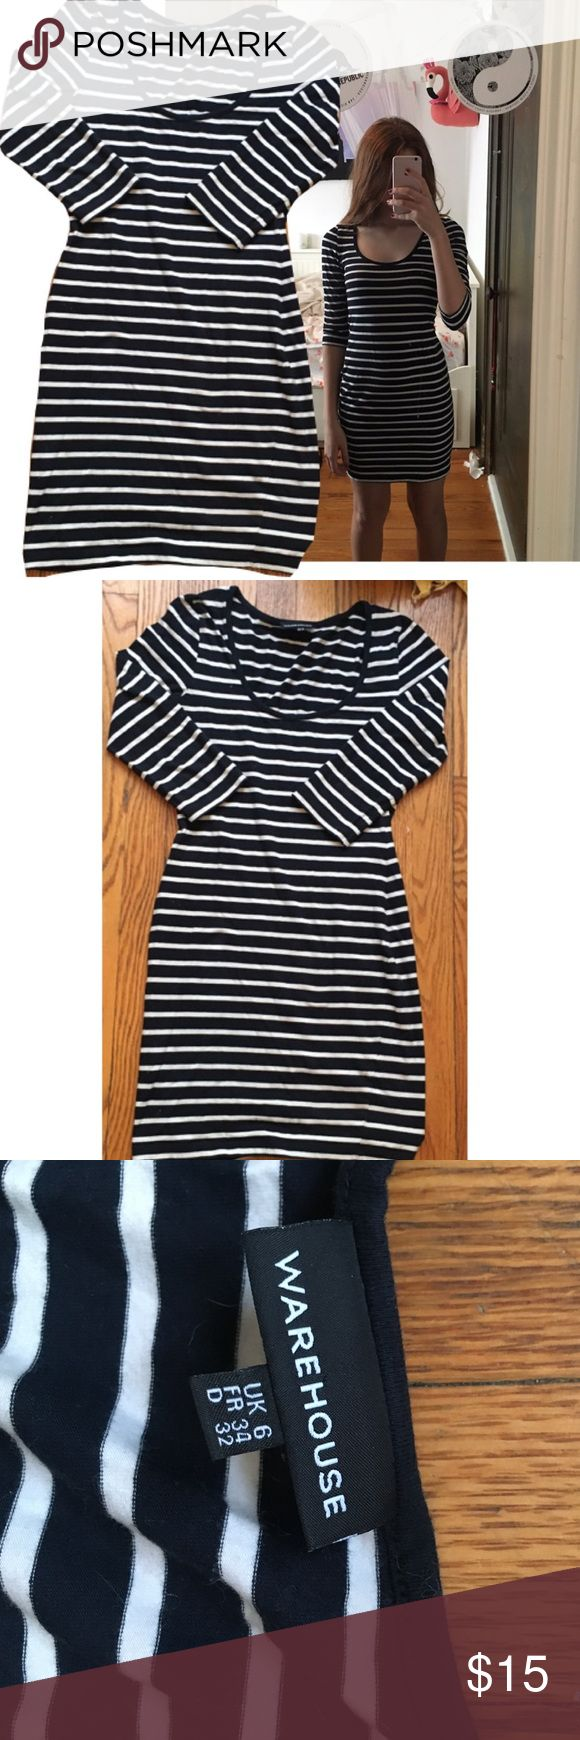 """ASOS STRIPED BODYCON DRESS ASOS - Warehouse BODYCON STRIPED NAVY BLUE AND WHITE DRESS. I am 5'2 and have 26"""" waist. Material is stretchy so it could possibly fit up to a medium on the smaller side. But would most likely look best on small sizes. Barely worn. Ships fast. So cute for parties or if you want to wear it casually it would look great as well!!❤️ Asos Dresses Midi"""